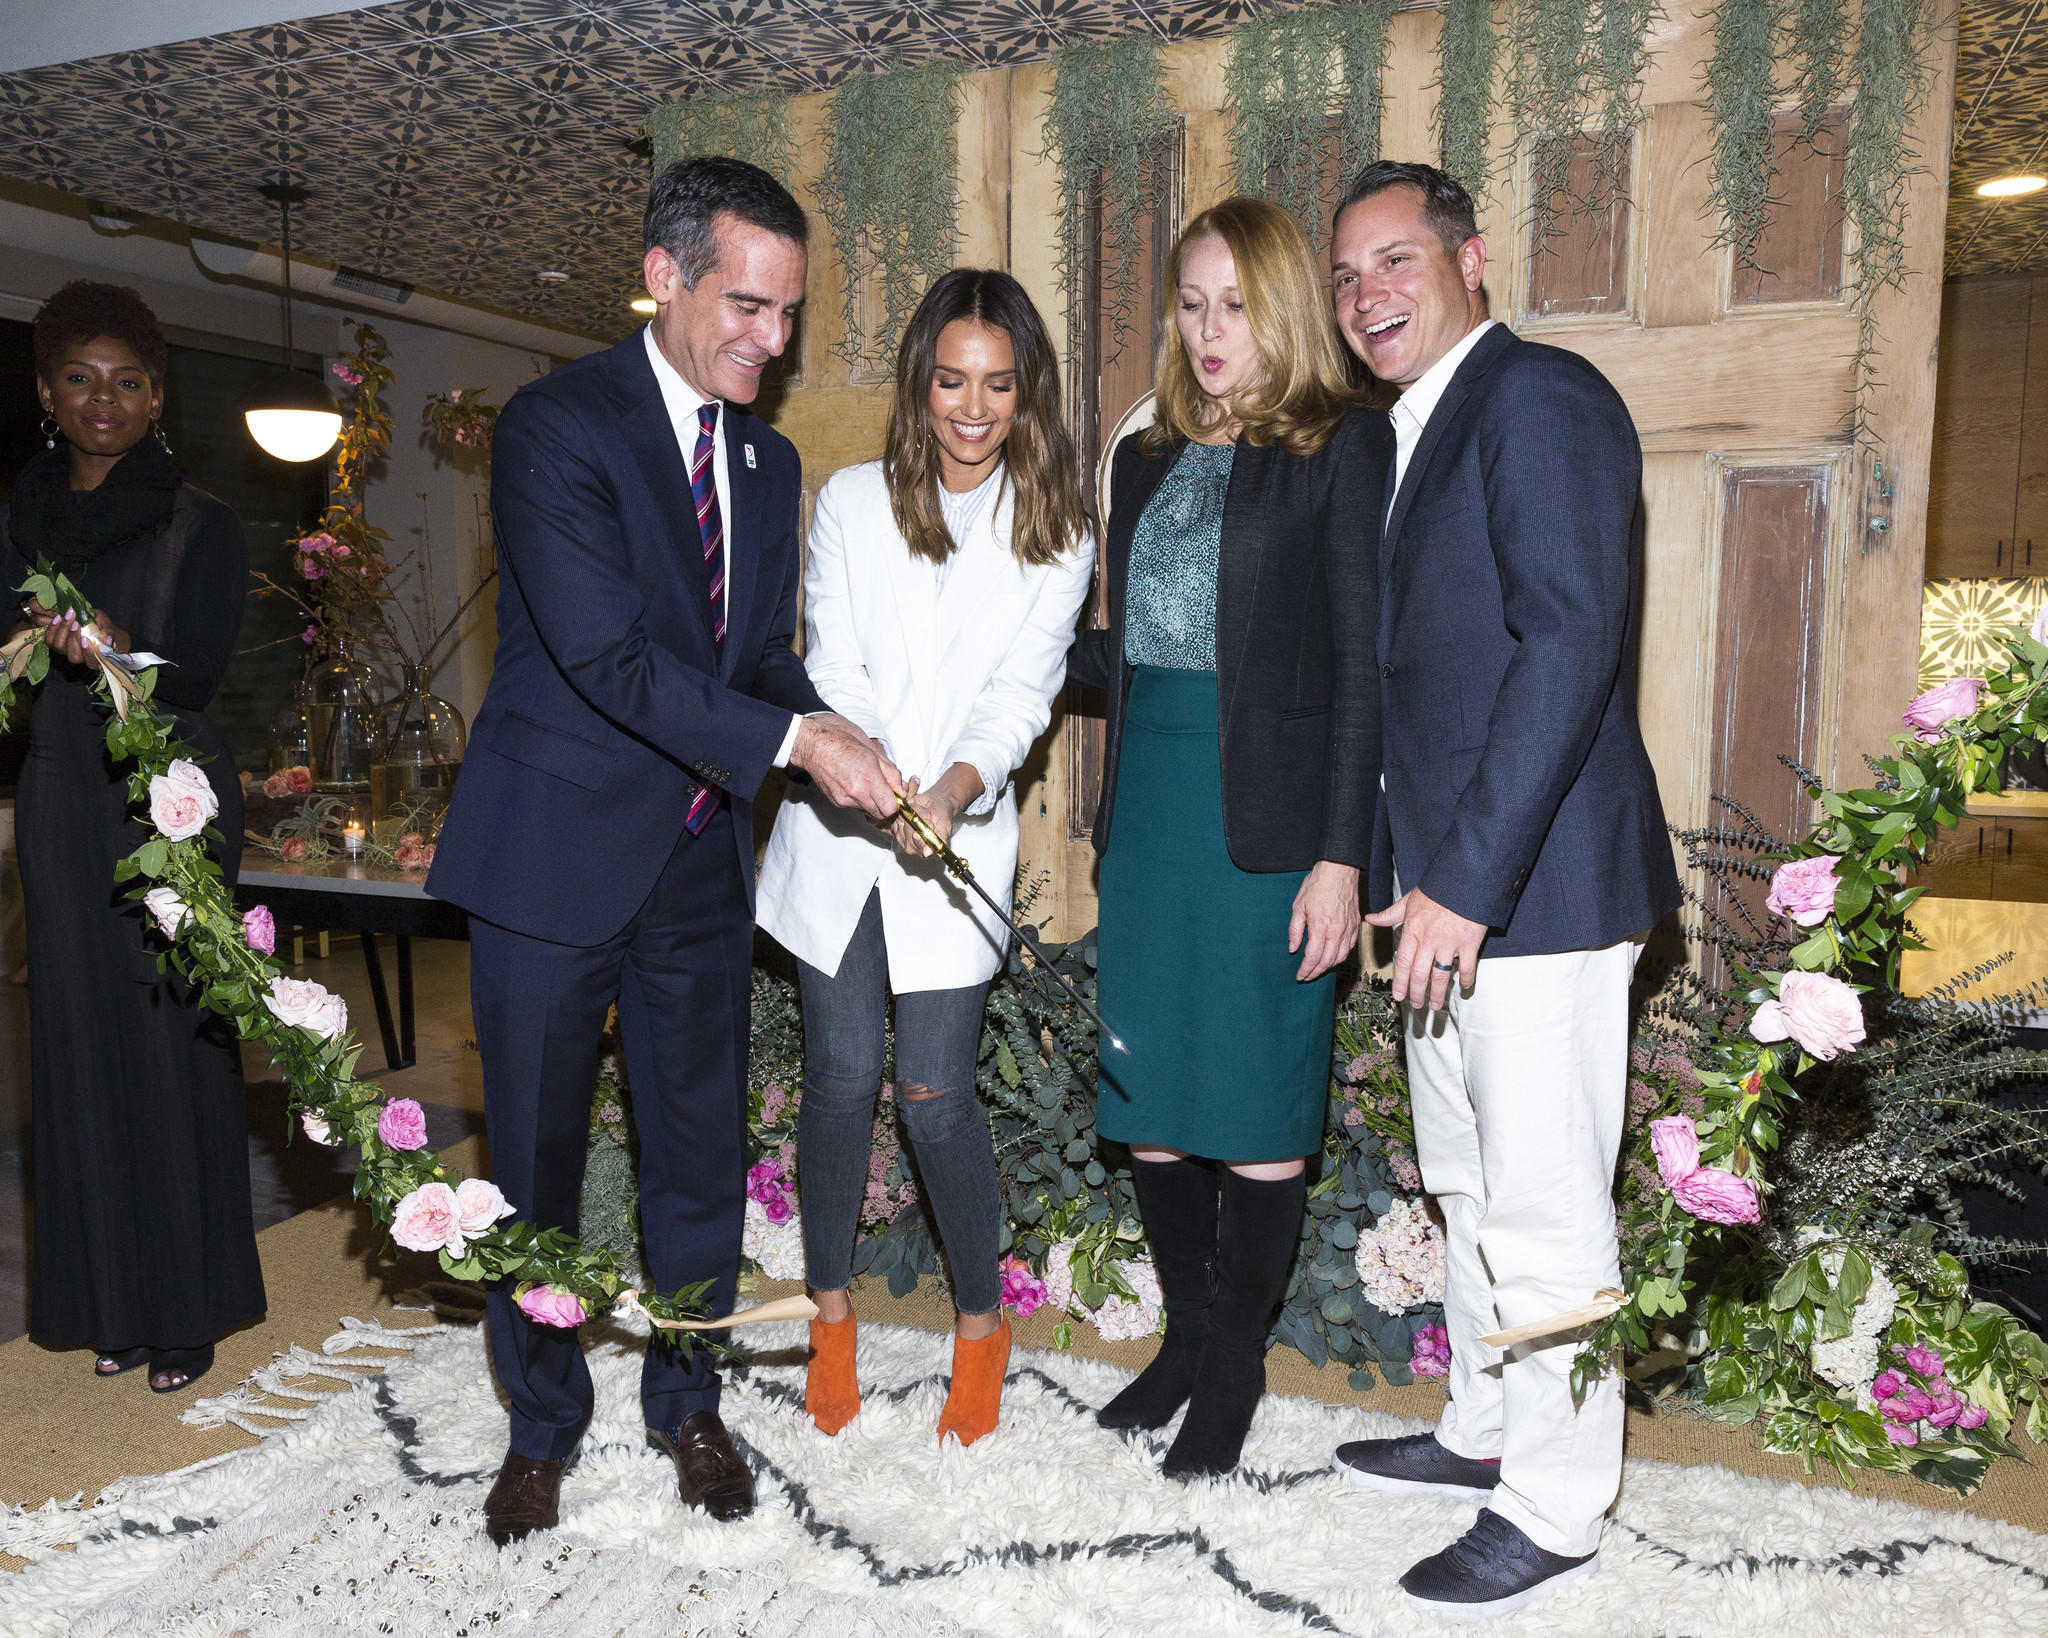 L.A. Mayor Eric Garcetti, left, Honest Co. founder Jessica Alba, L.A. first lady Amy Wakeland and Honest President Sean Kane at the ribbon-cutting for the company's new headquarters in Playa Vista.